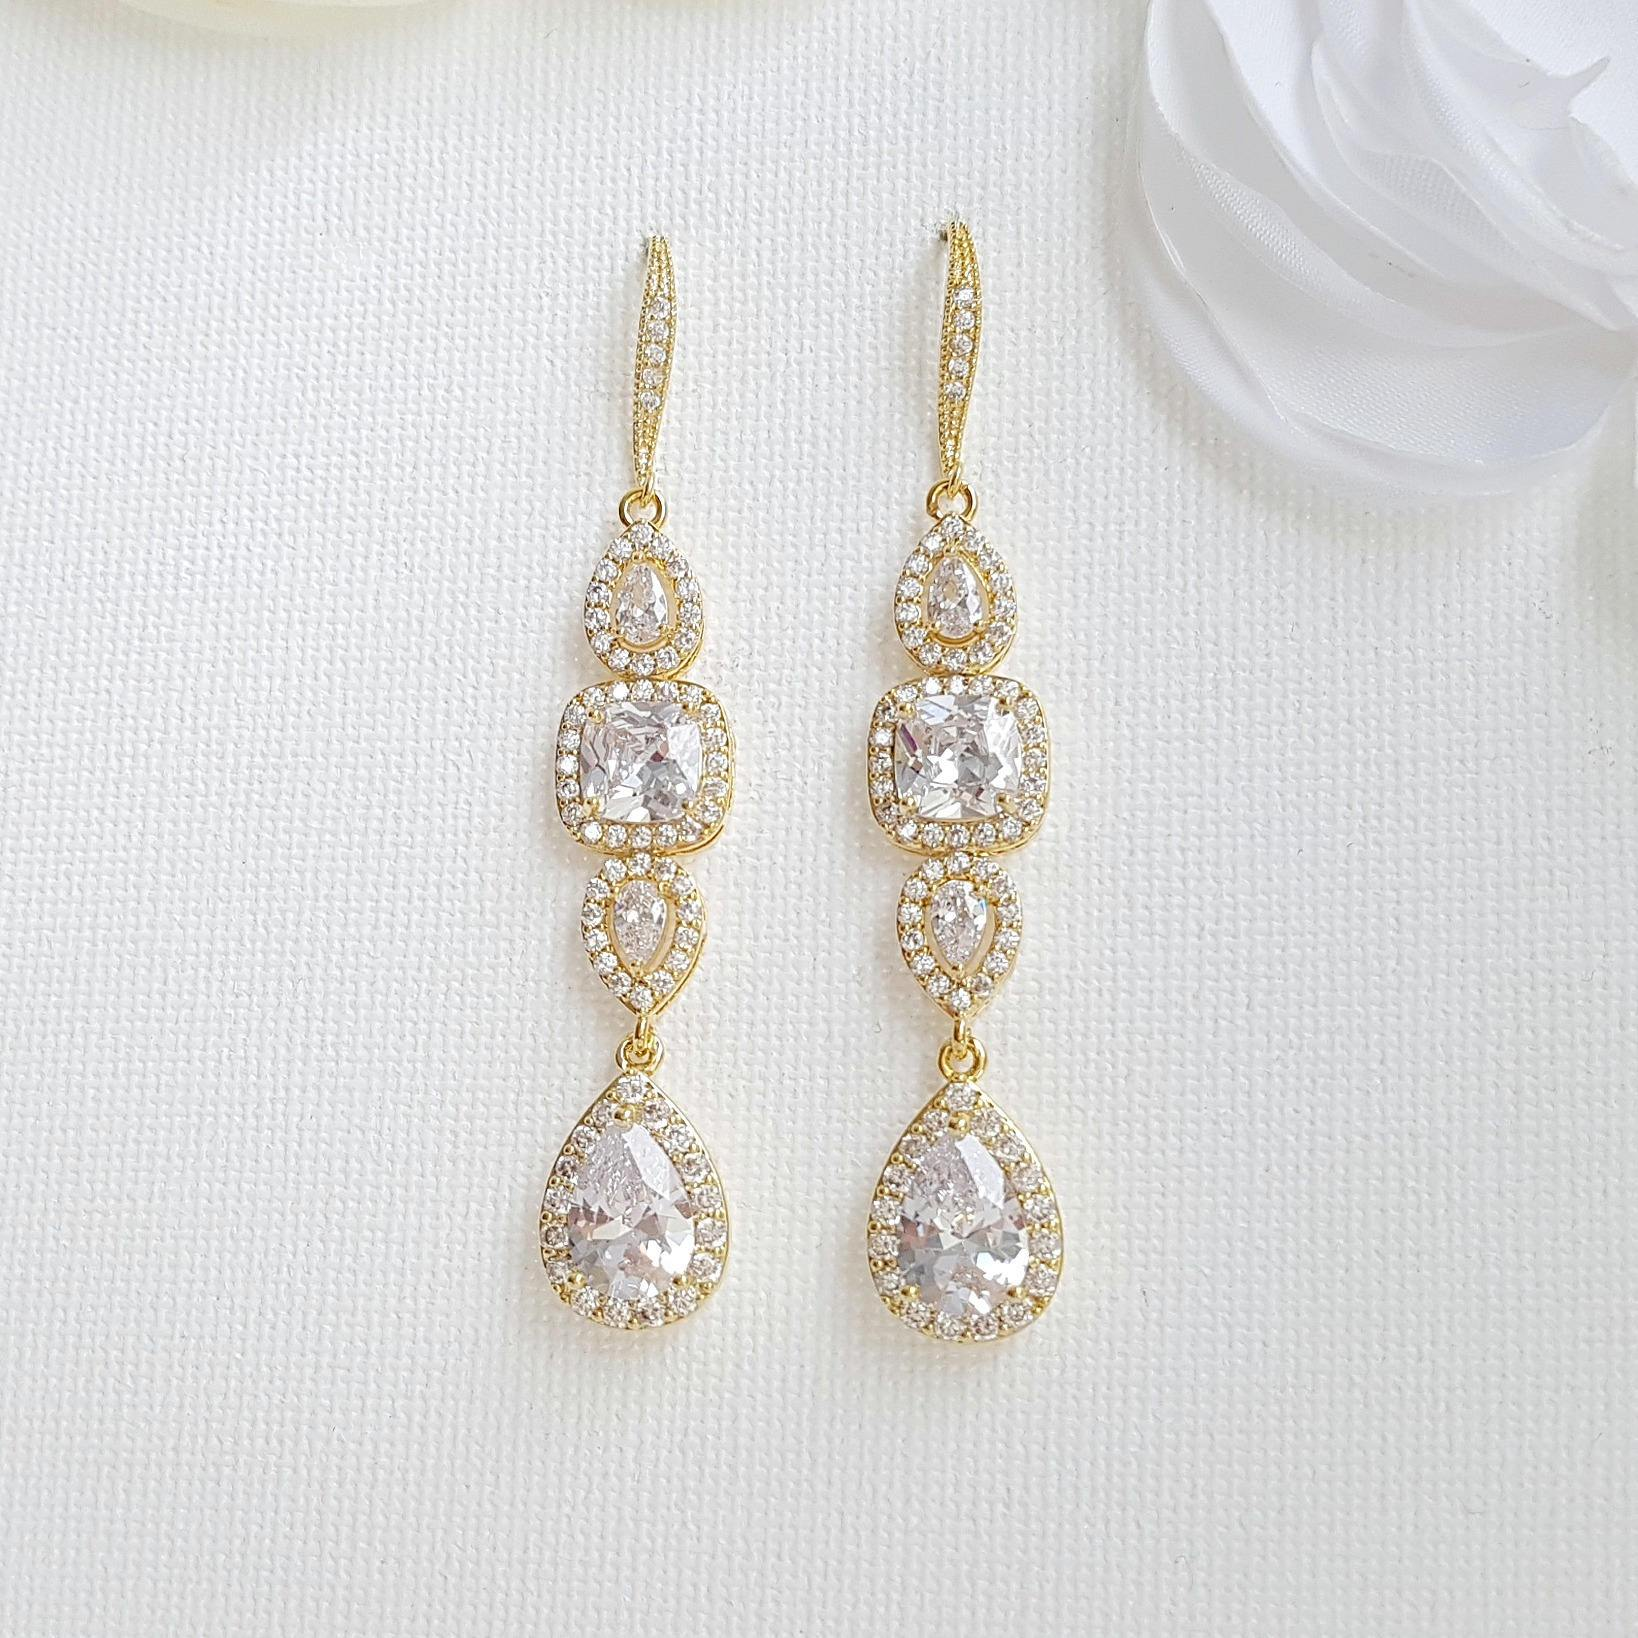 Gold Drop Earrings Weddings- Gianna